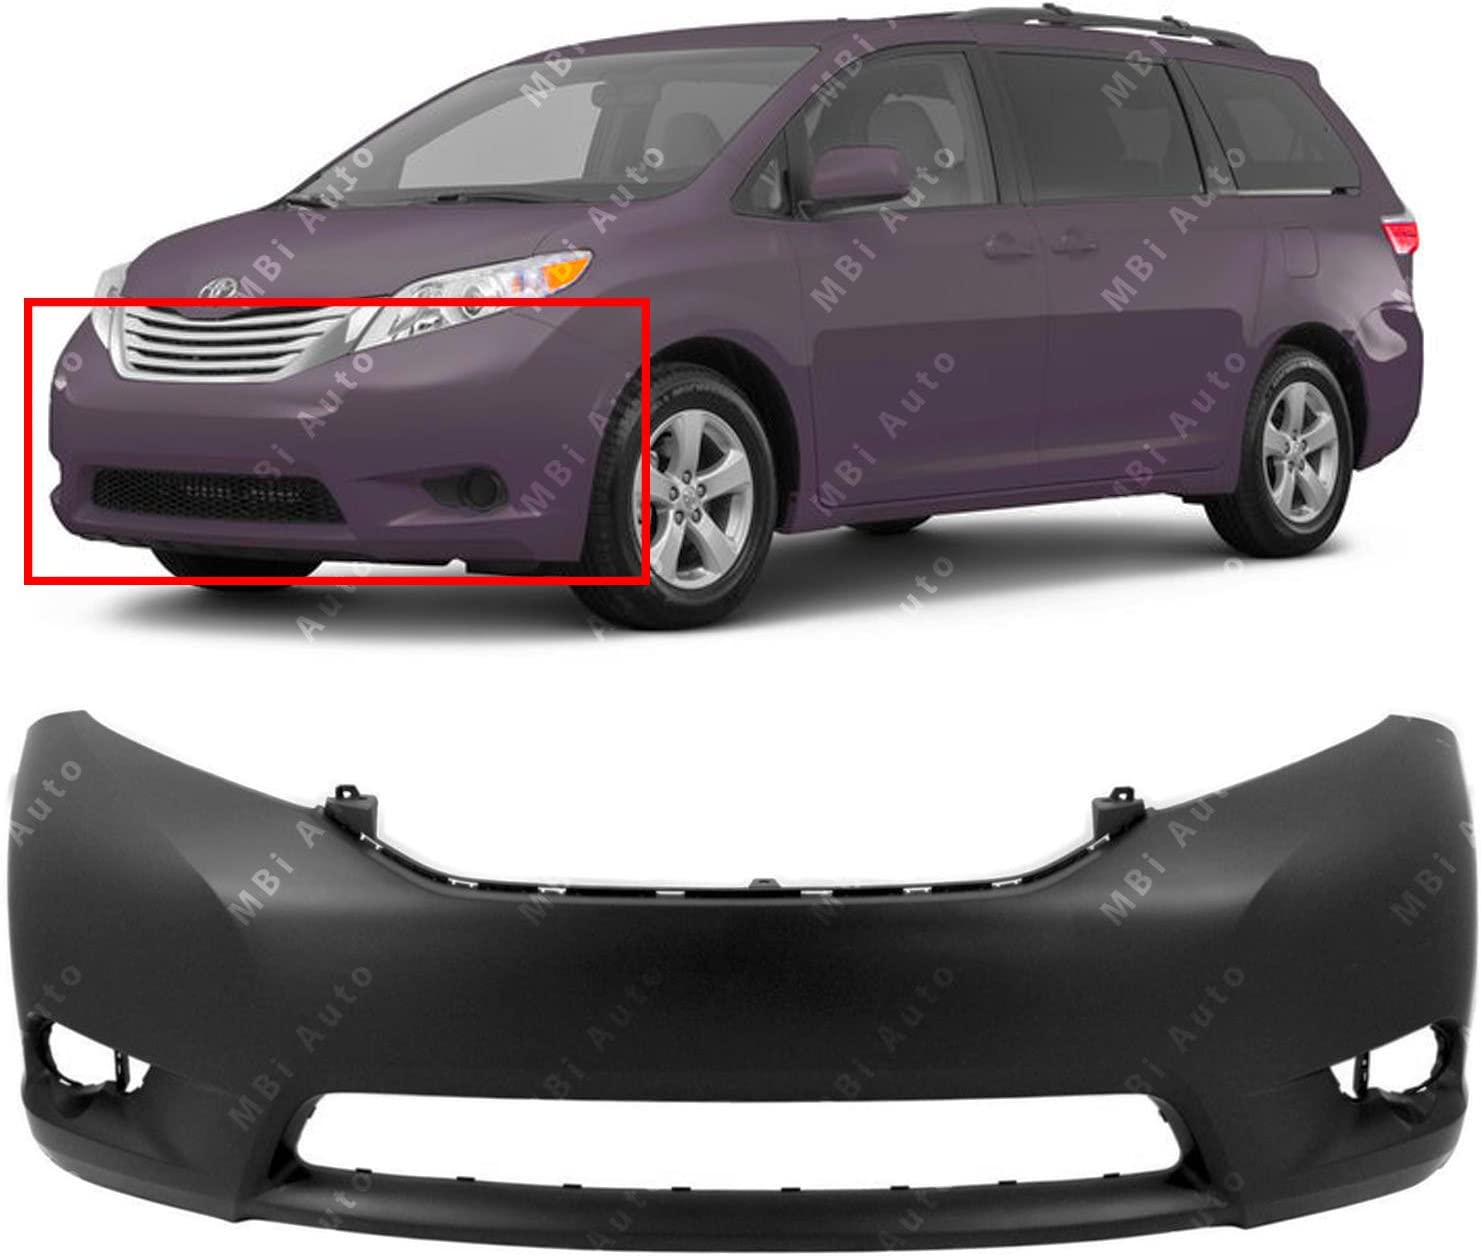 Rear Bumper Cover For 2011-2018 Toyota Sienna Van W//o PArk Assist NEW Primered